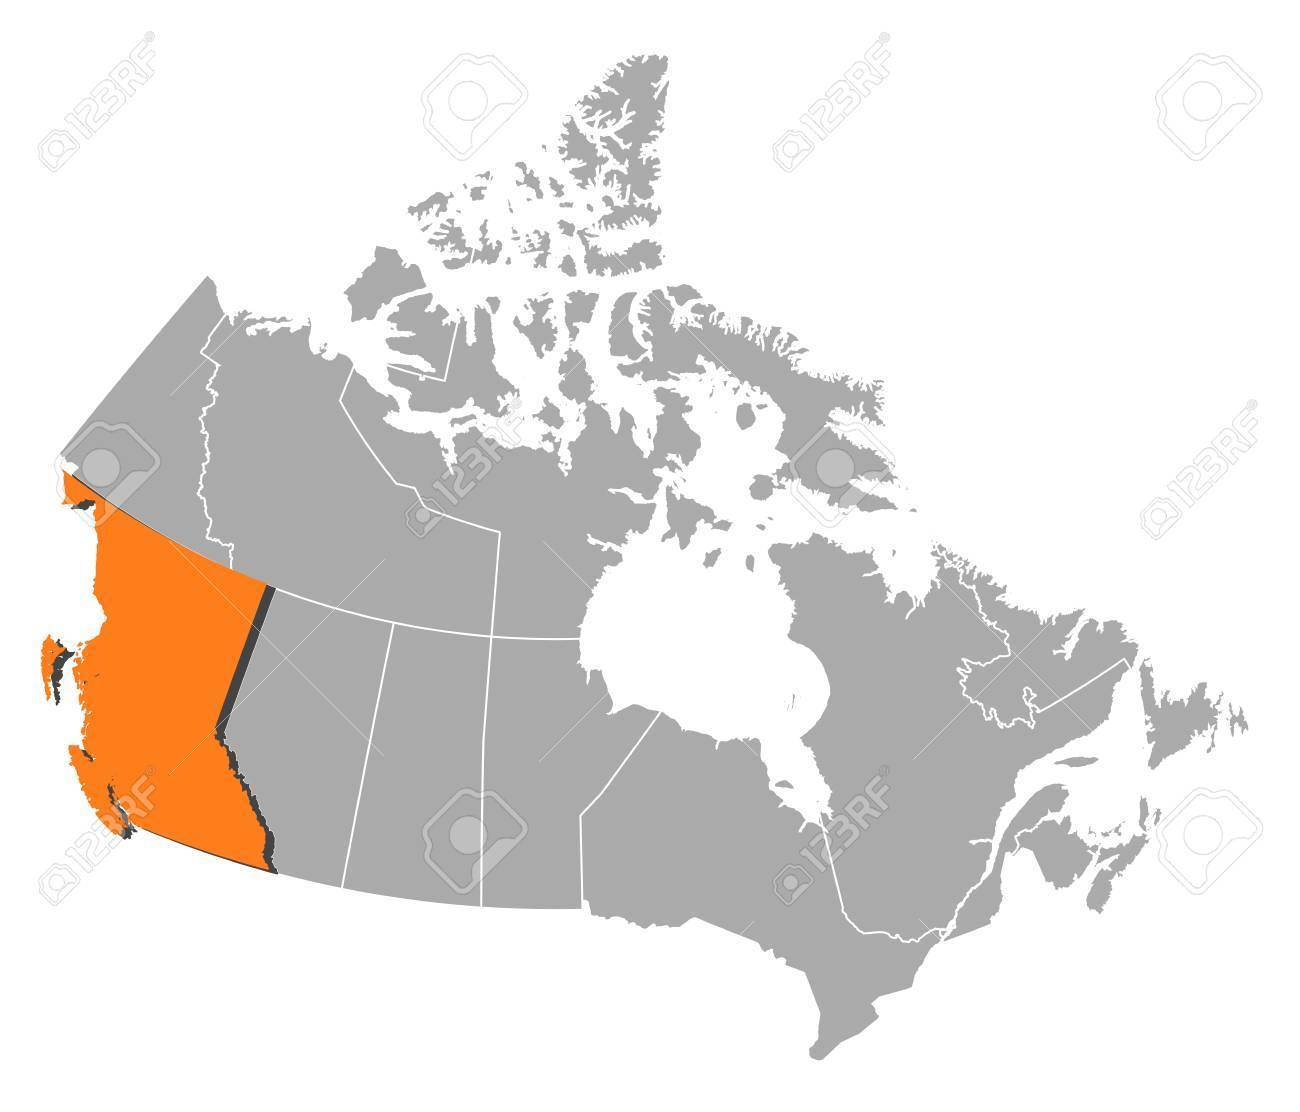 Map Of Canada British Columbia.Map Of Canada With The Provinces British Columbia Is Highlighted